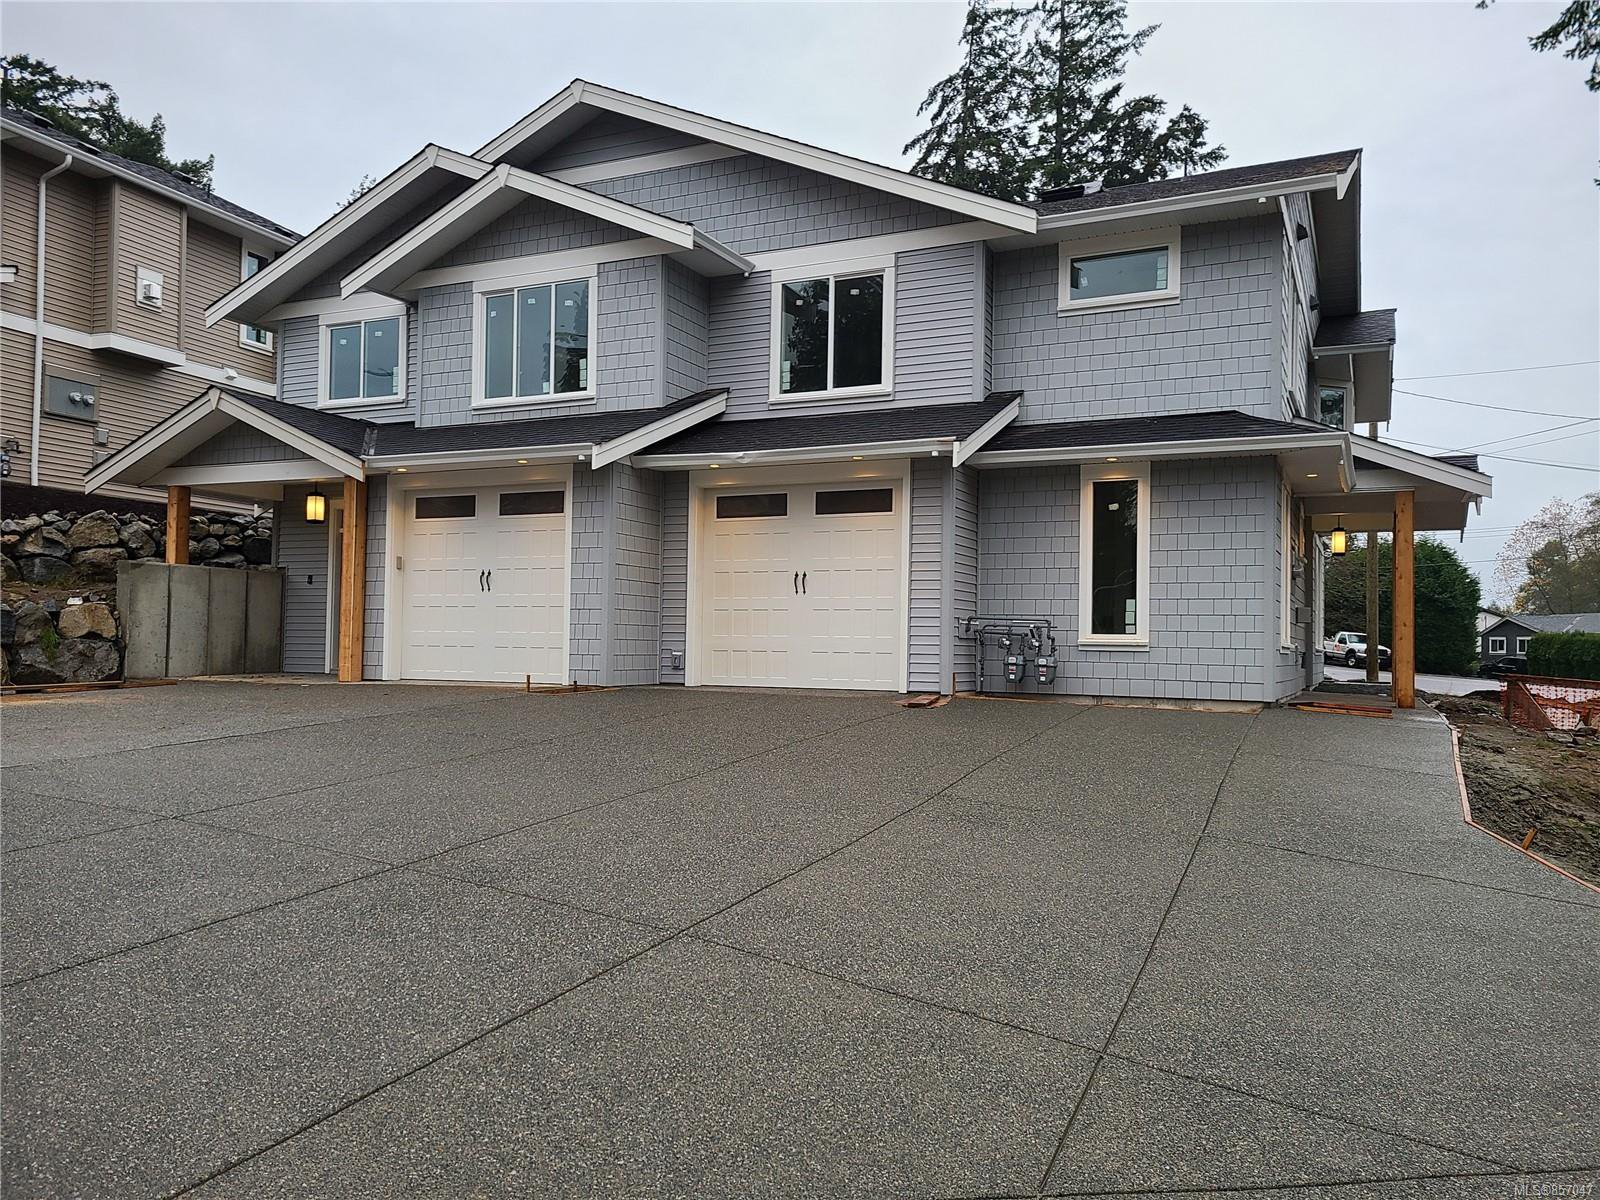 Main Photo: 102 Golden Oaks Cres in : Na North Nanaimo Half Duplex for sale (Nanaimo)  : MLS®# 857047